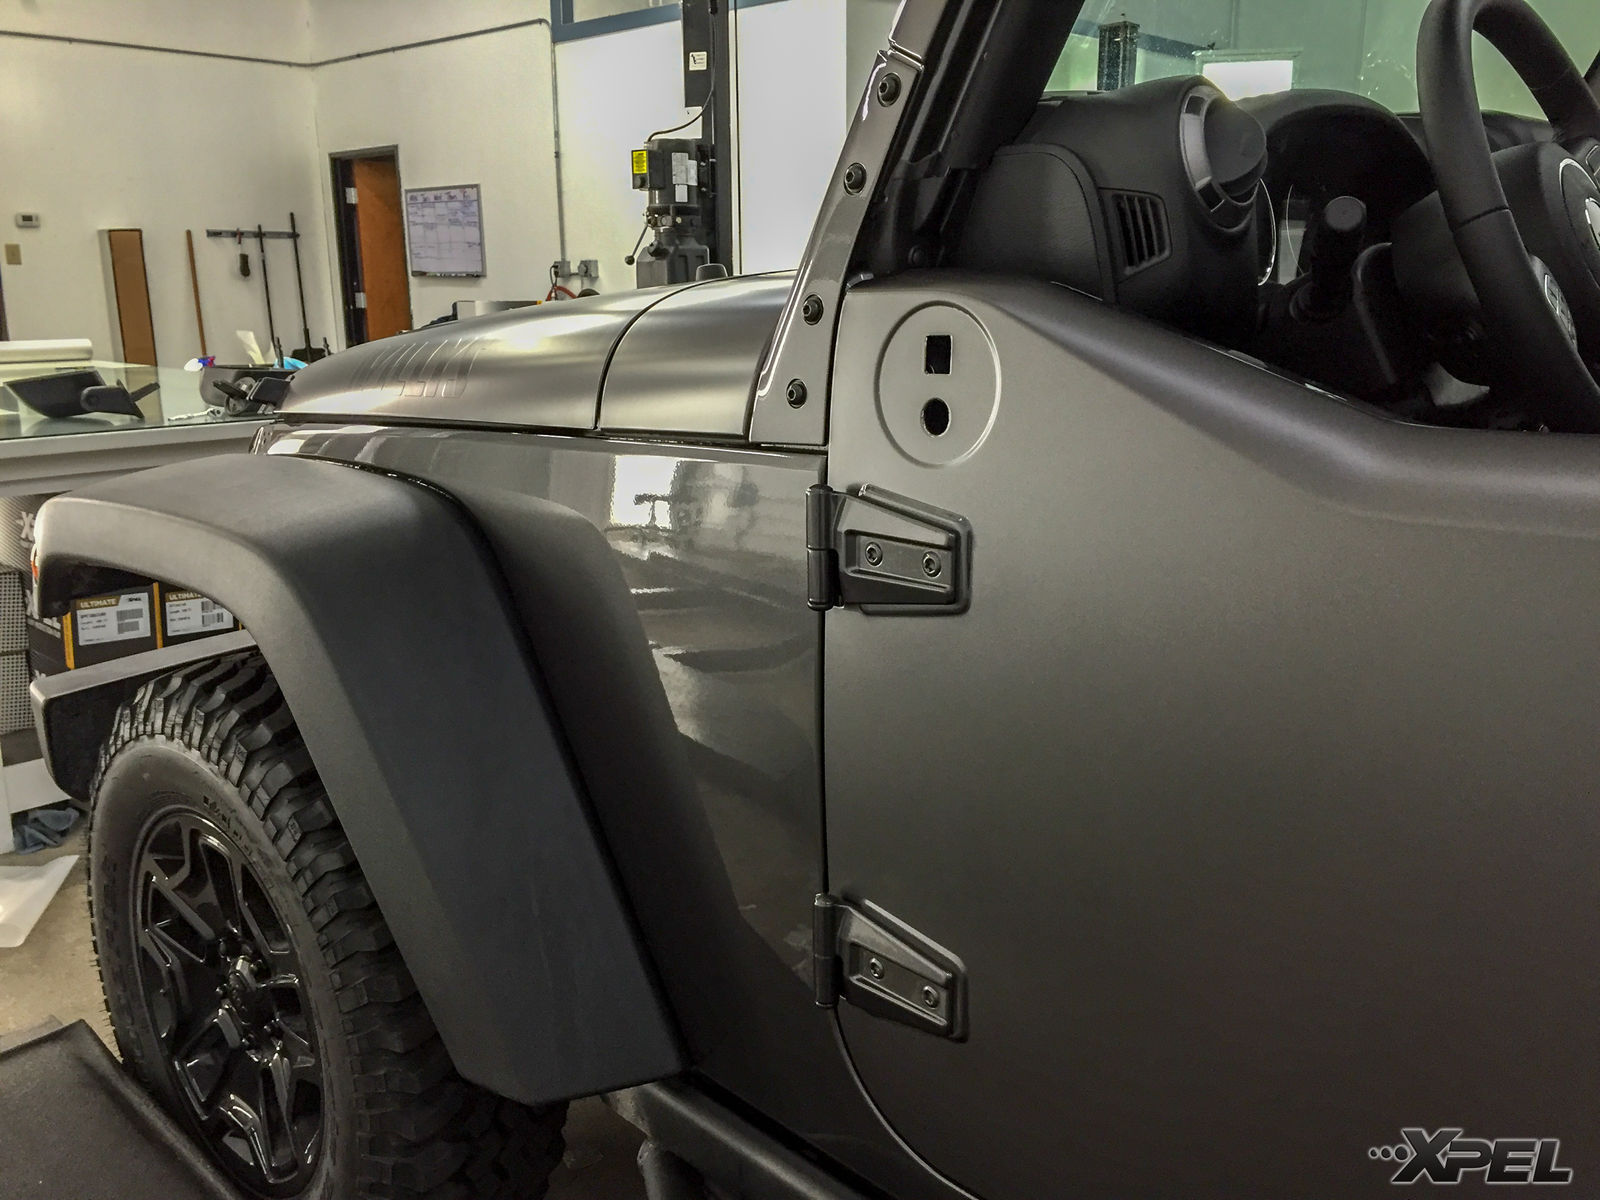 2016 Jeep Wrangler | We wrapped this Jeep with XPEL STEALTH satin-finish clear bra - Paint Protection